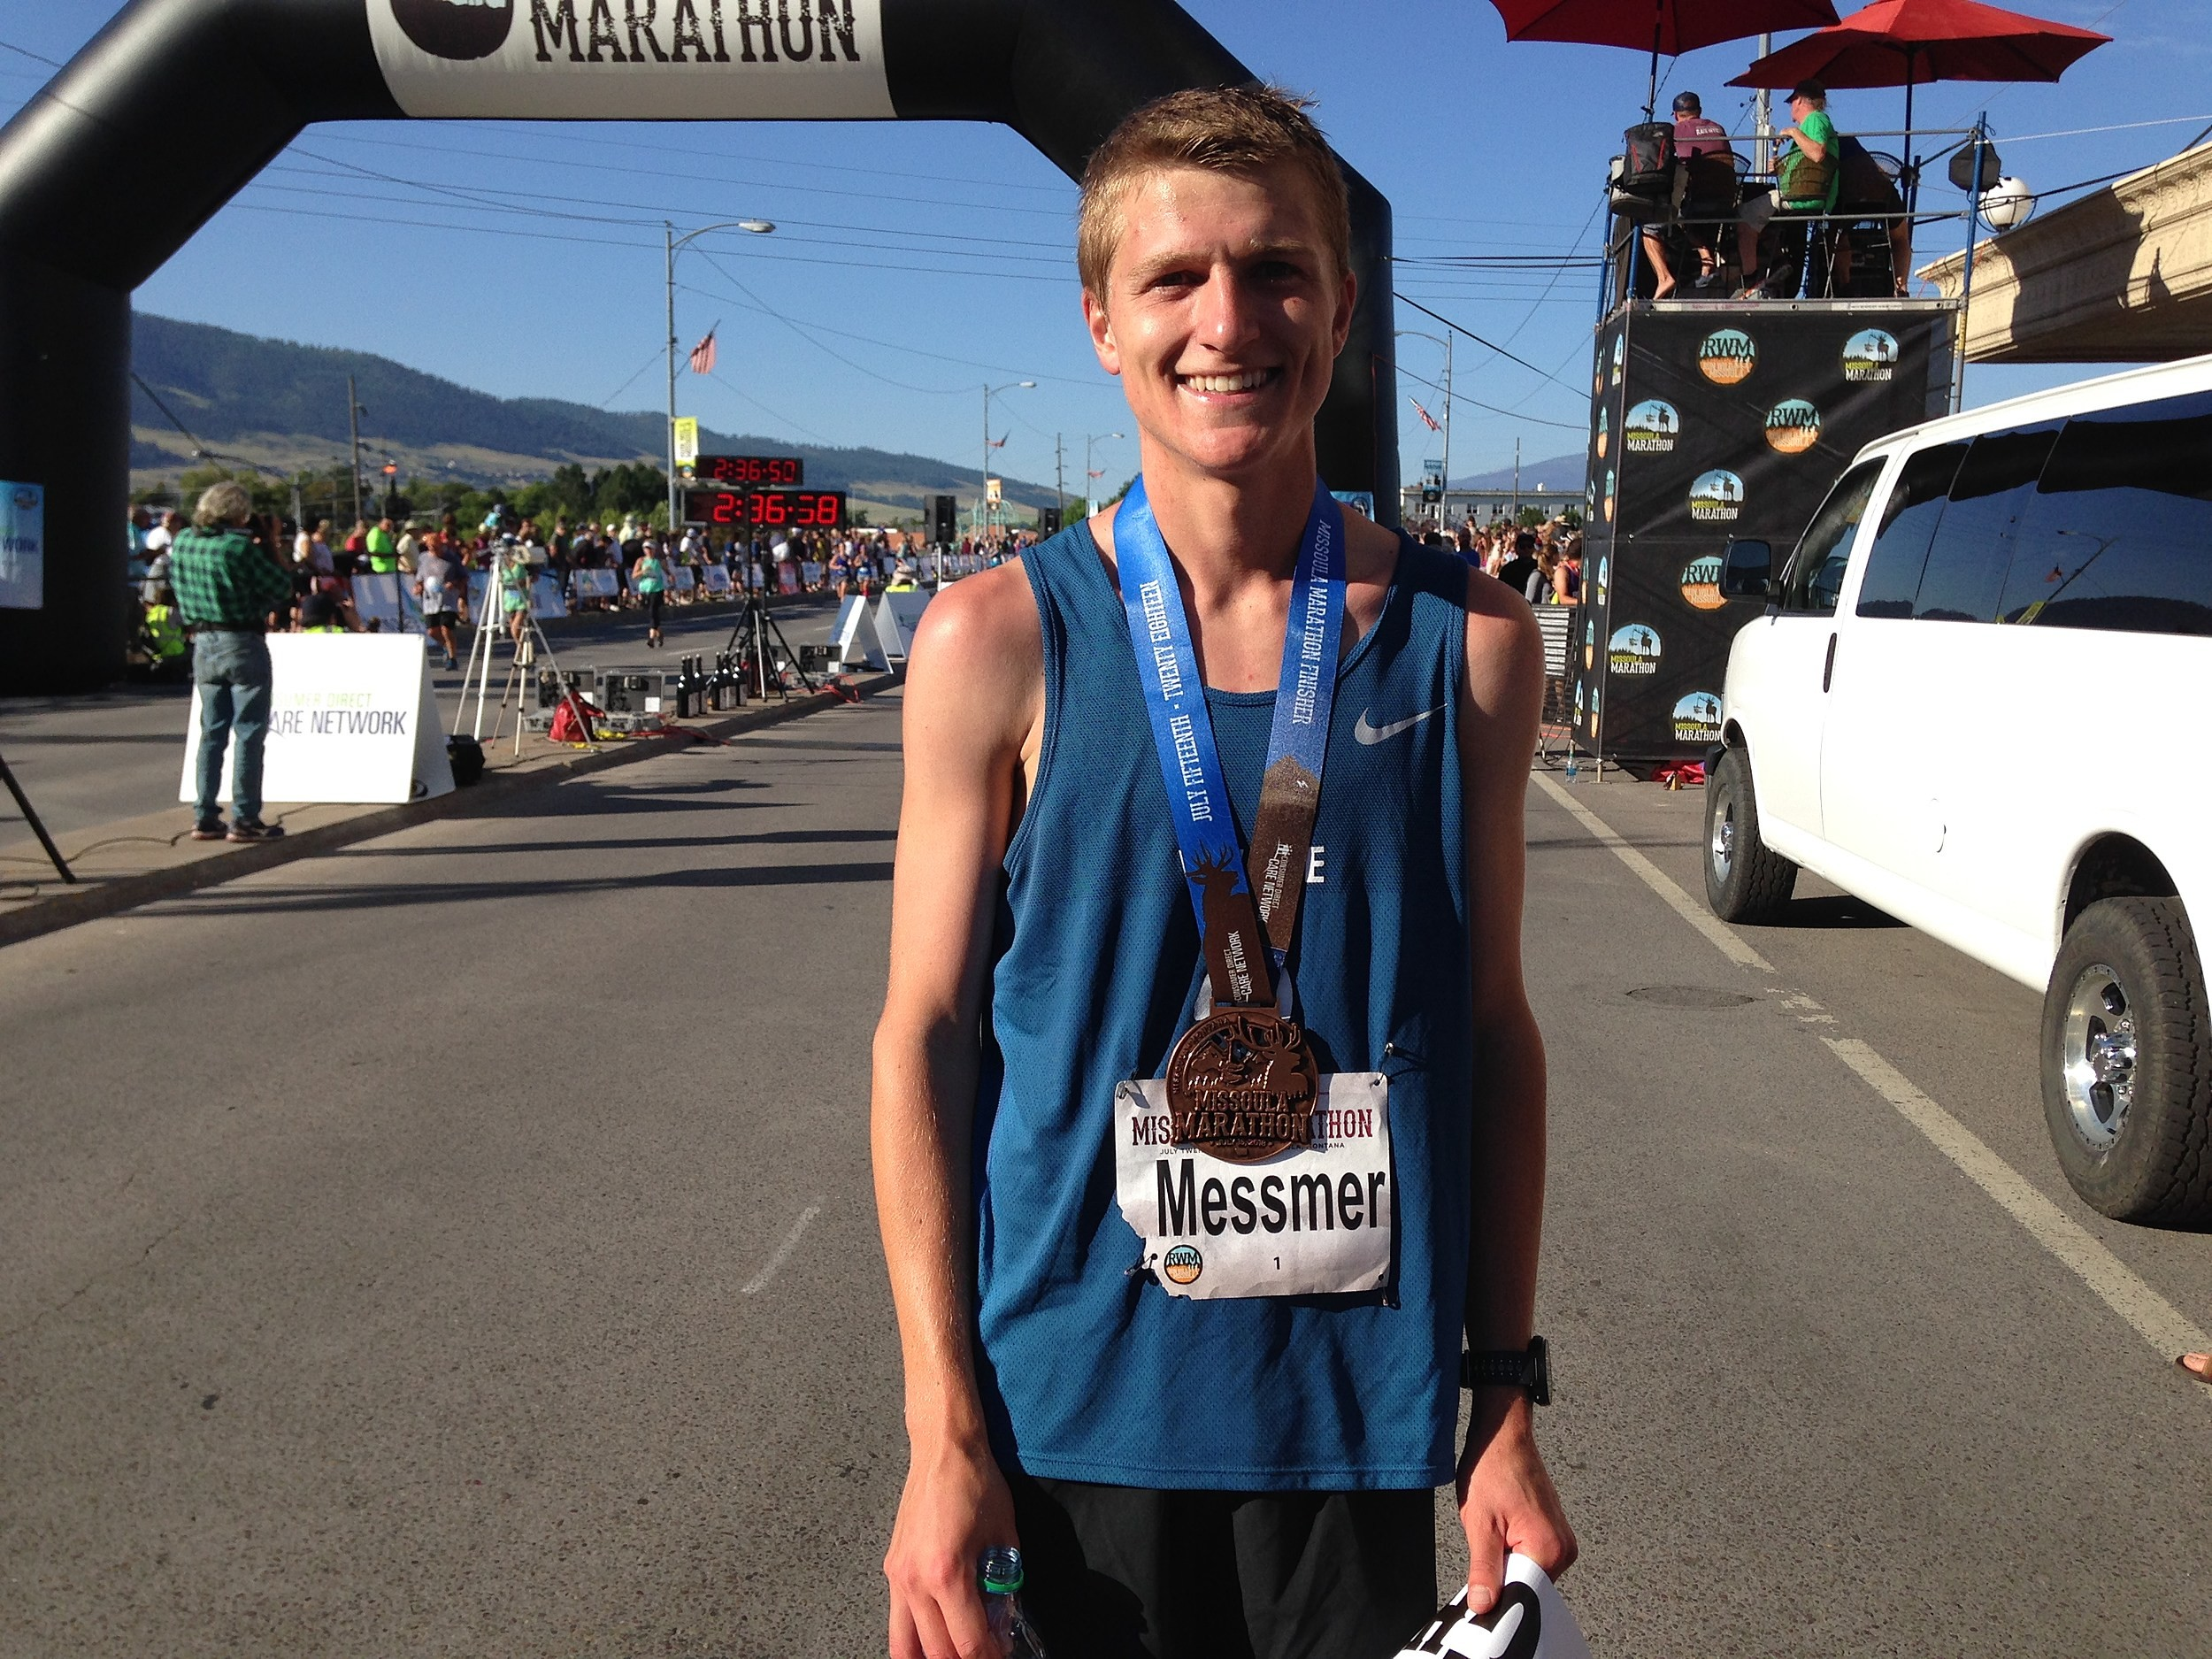 Mark Messmer repeated as the champion of the Missoula men's marathon, breaking his personal best time with a 2:23:59, the second fastest in course history